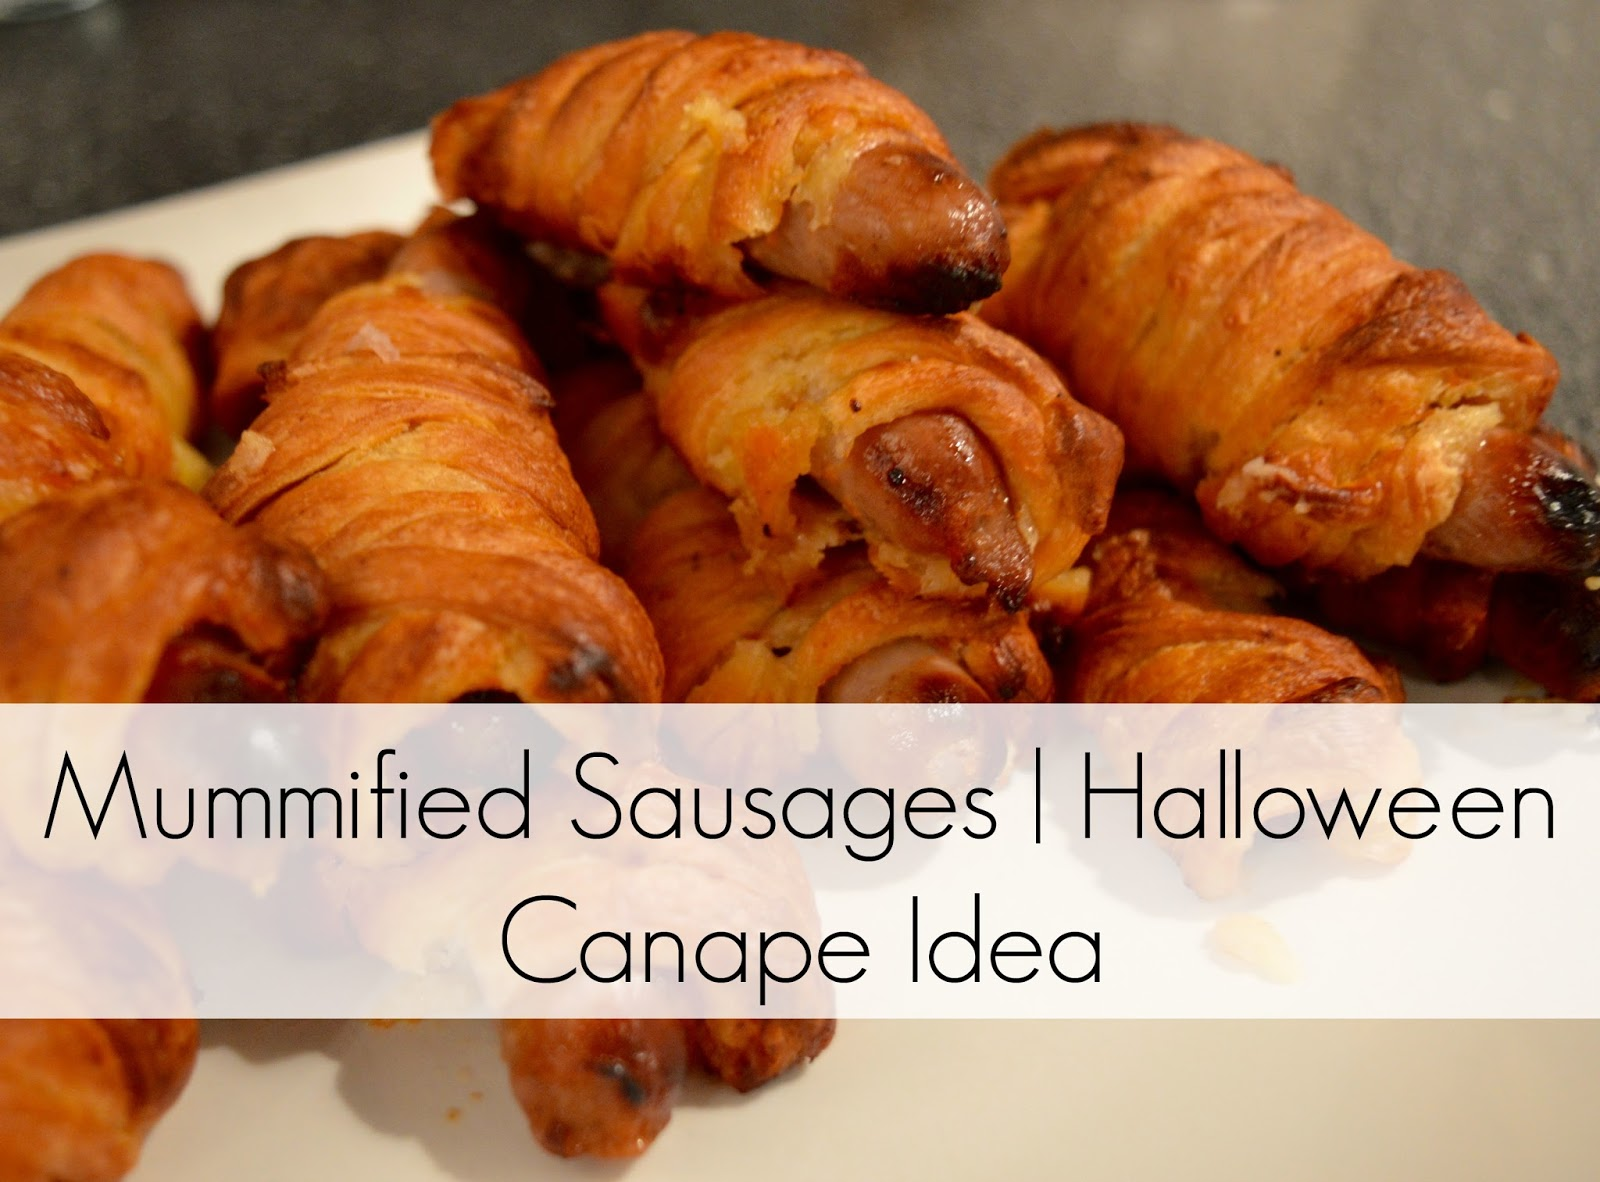 Halloween Canape Idea - Mummified Sausages recipe